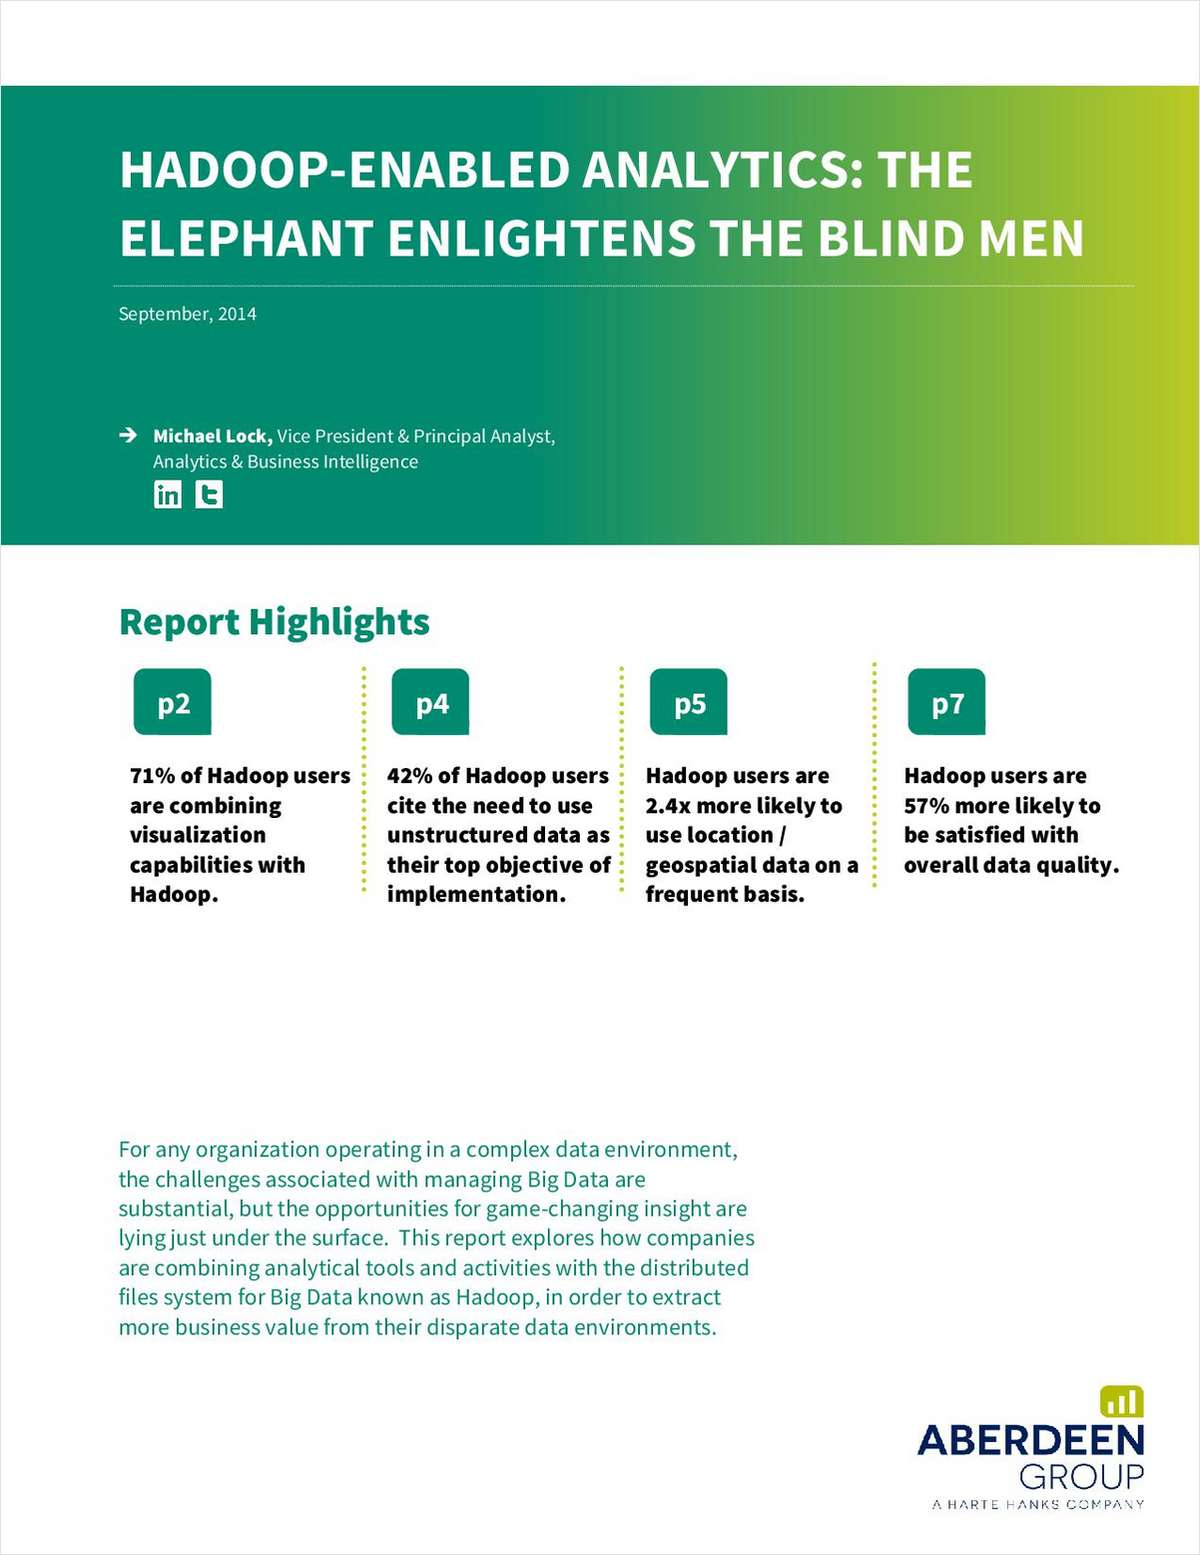 Hadoop-Enabled Analytics: The Elephant Enlightens the Blind Men